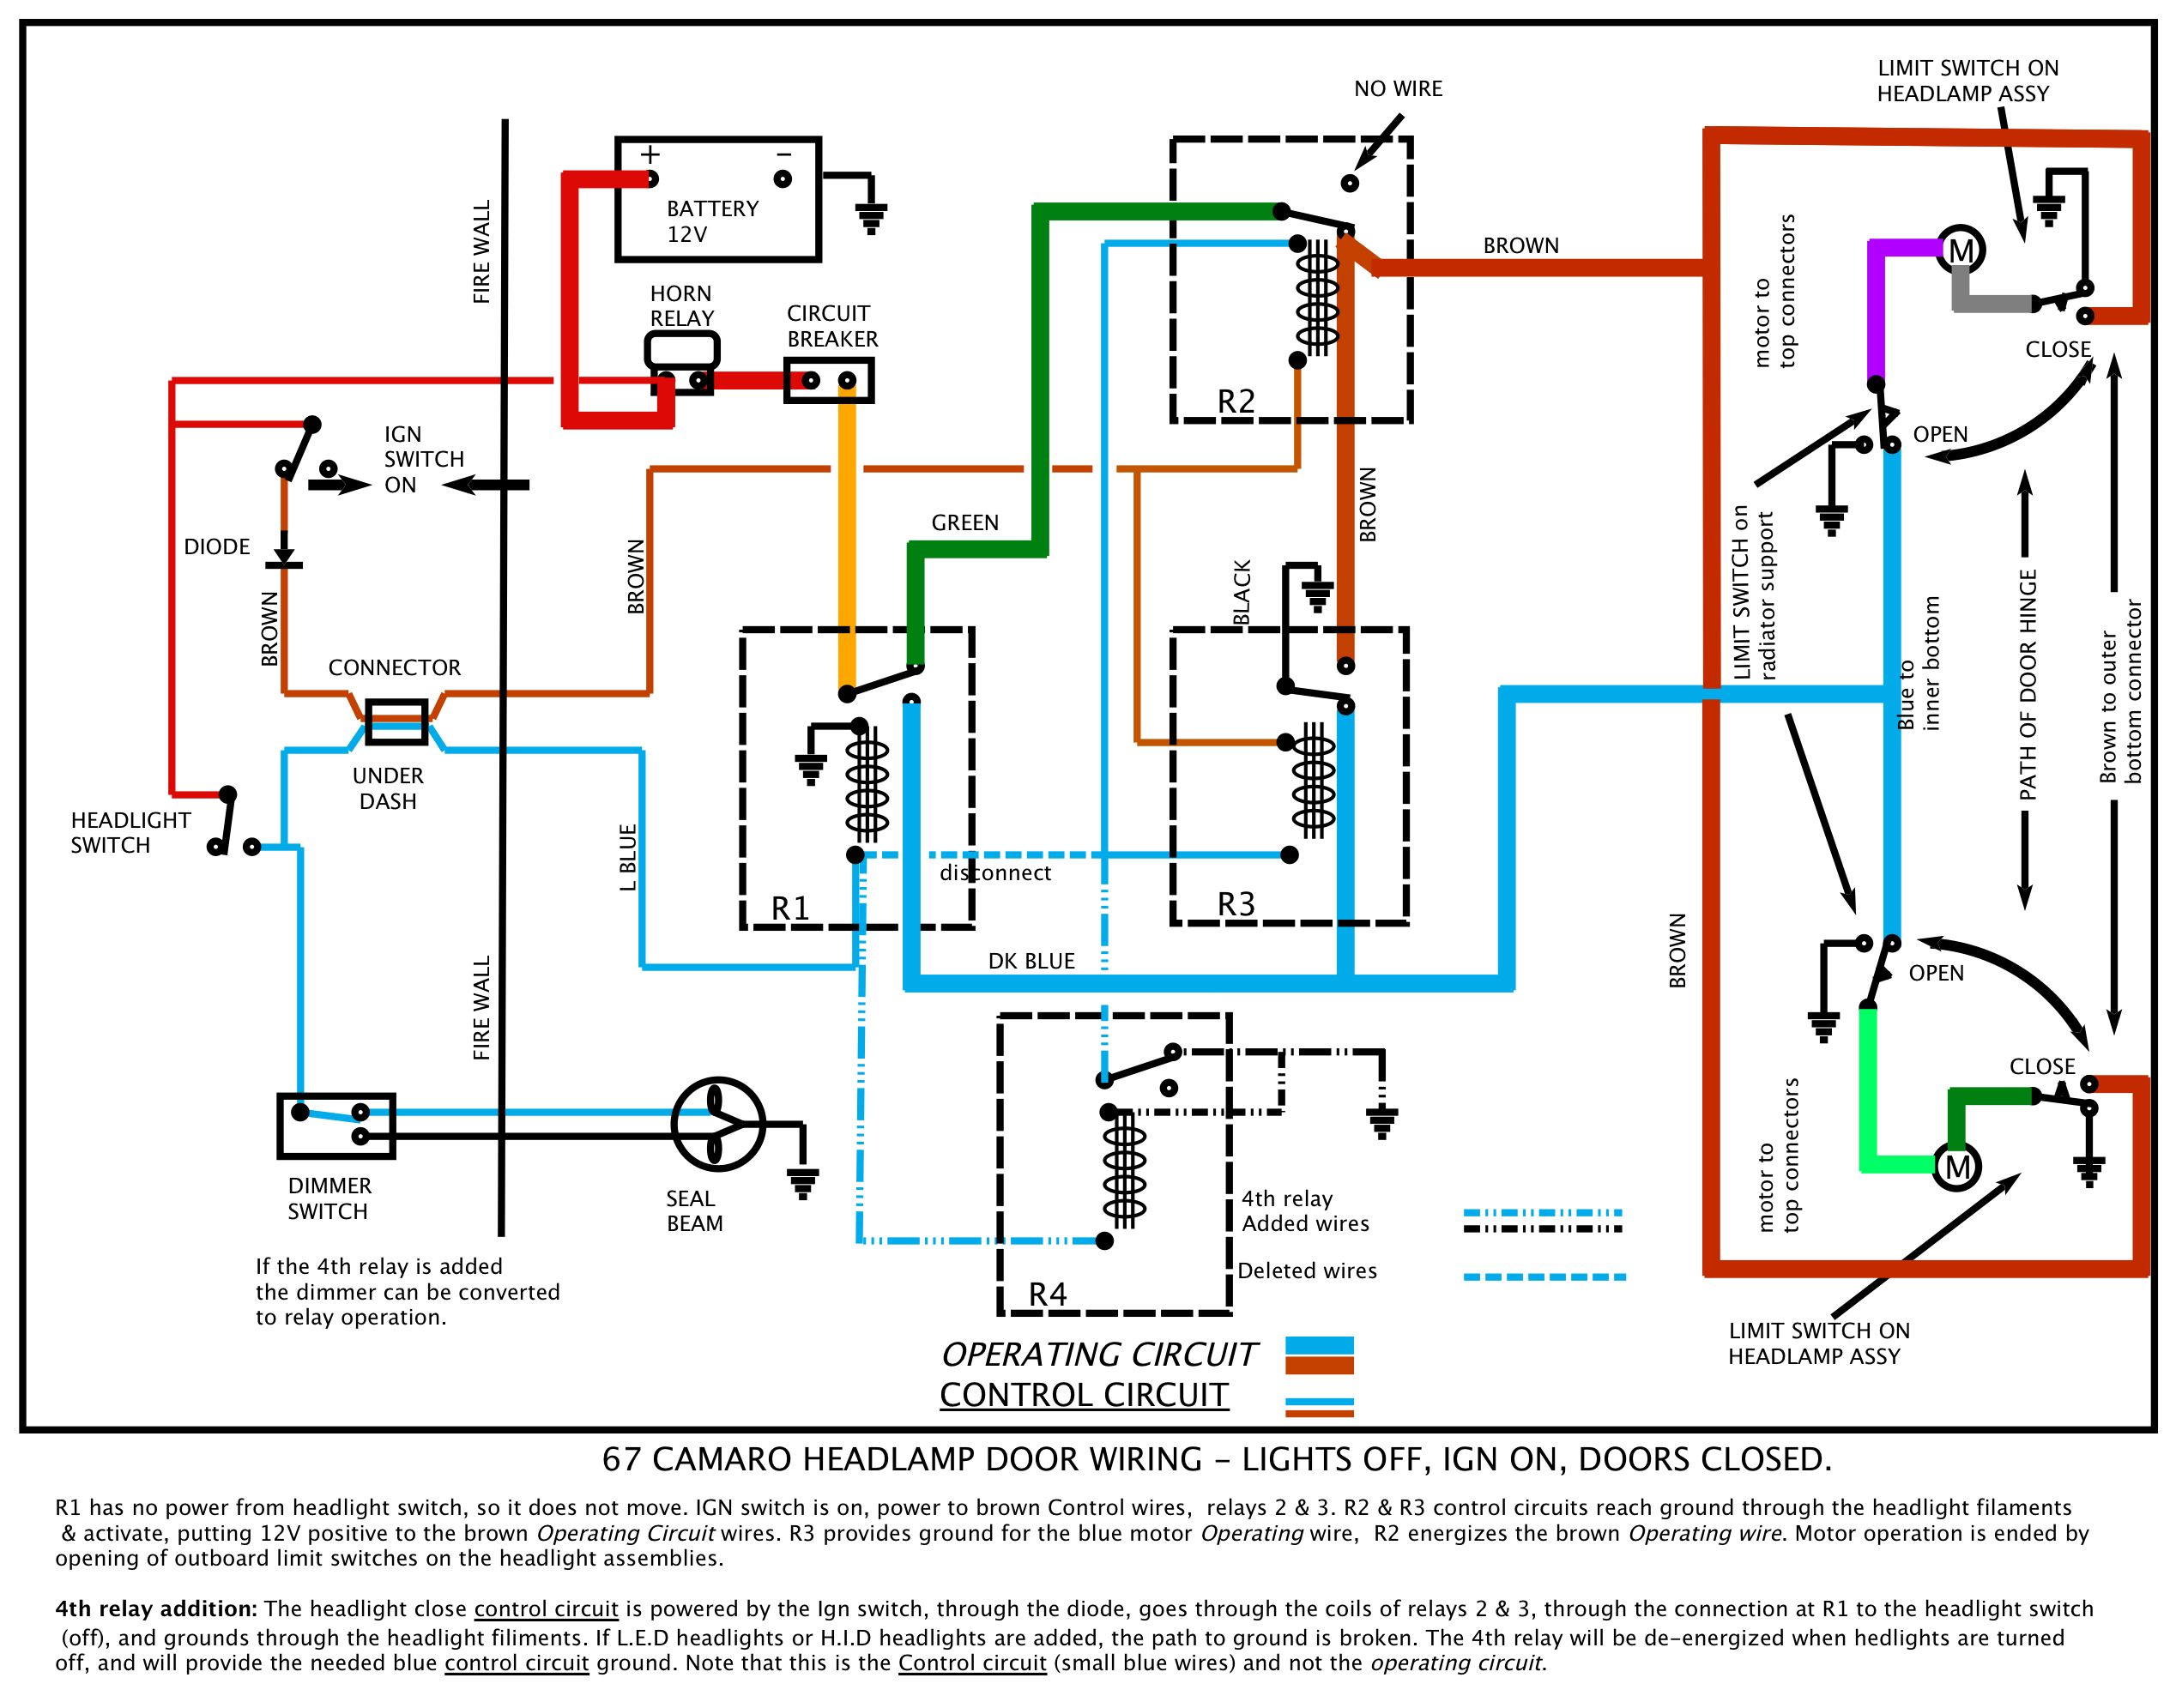 Rs Ign On Th Relay on 1967 Camaro Rs Headlight Wiring Diagram